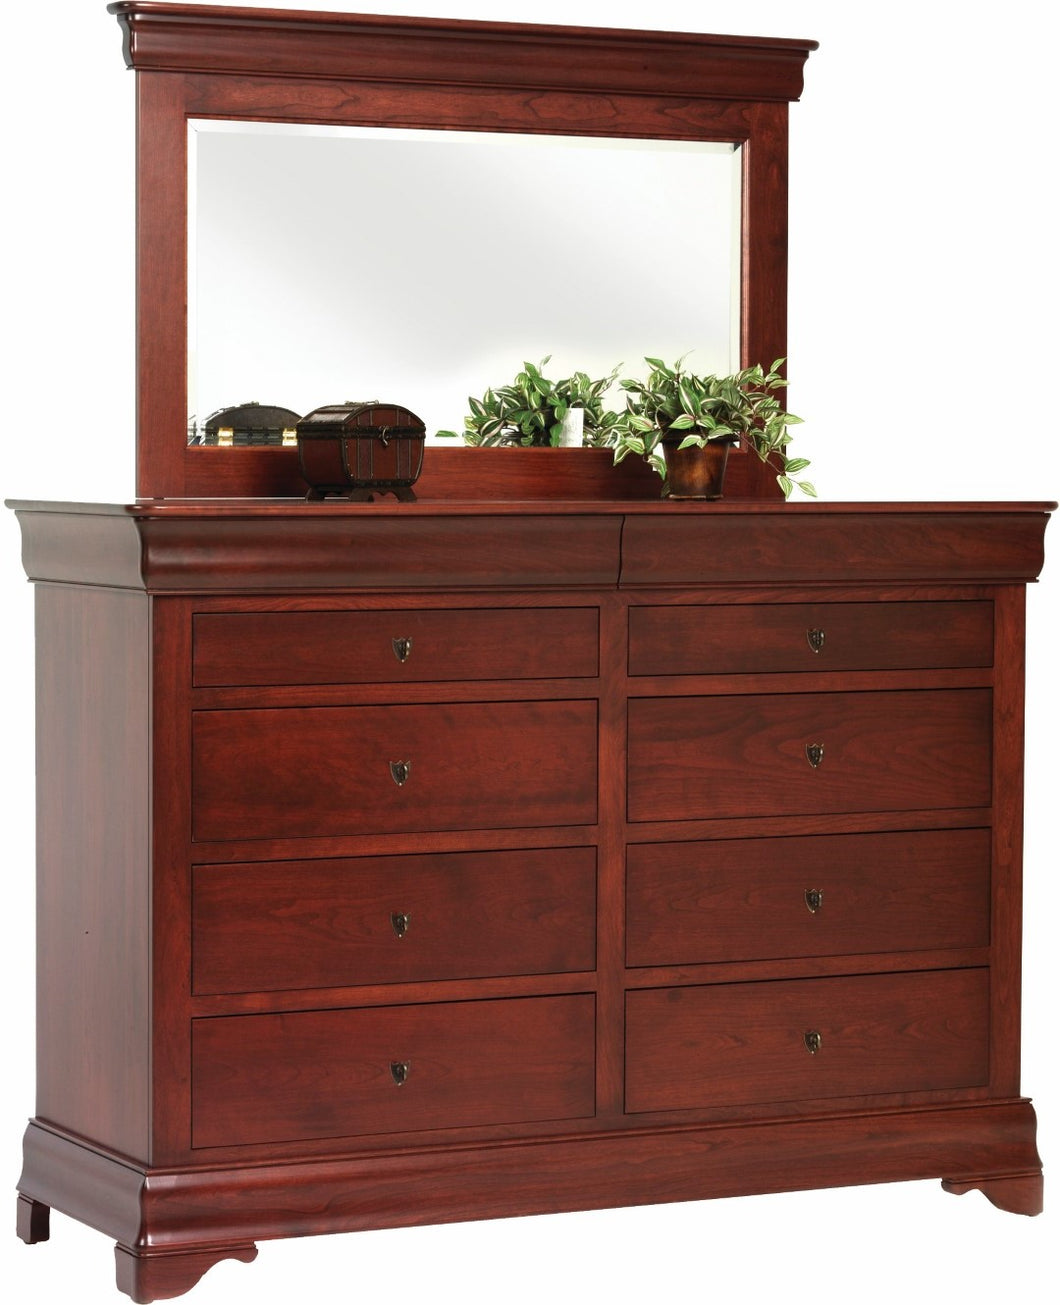 Louis Phillipe High Dresser